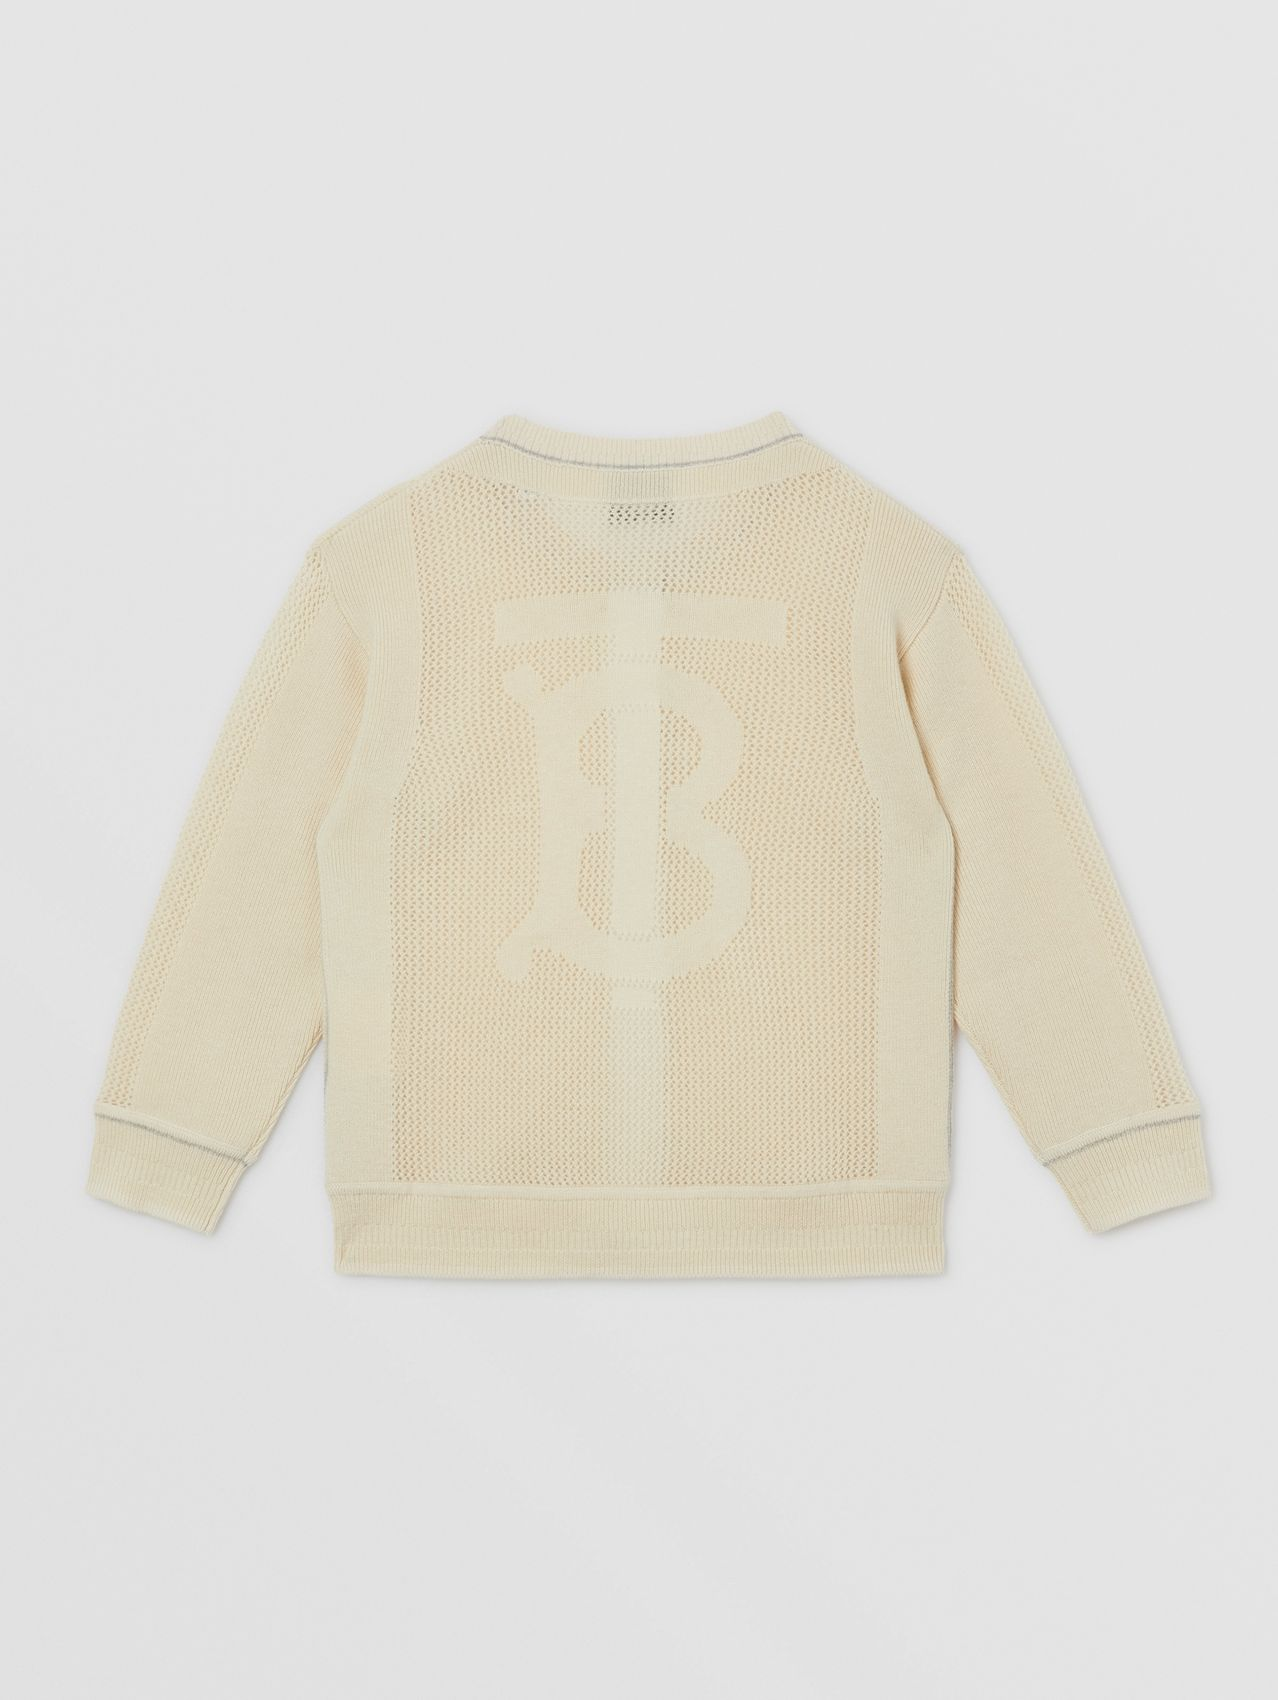 Monogram Motif Knitted Cashmere Cardigan in Ivory